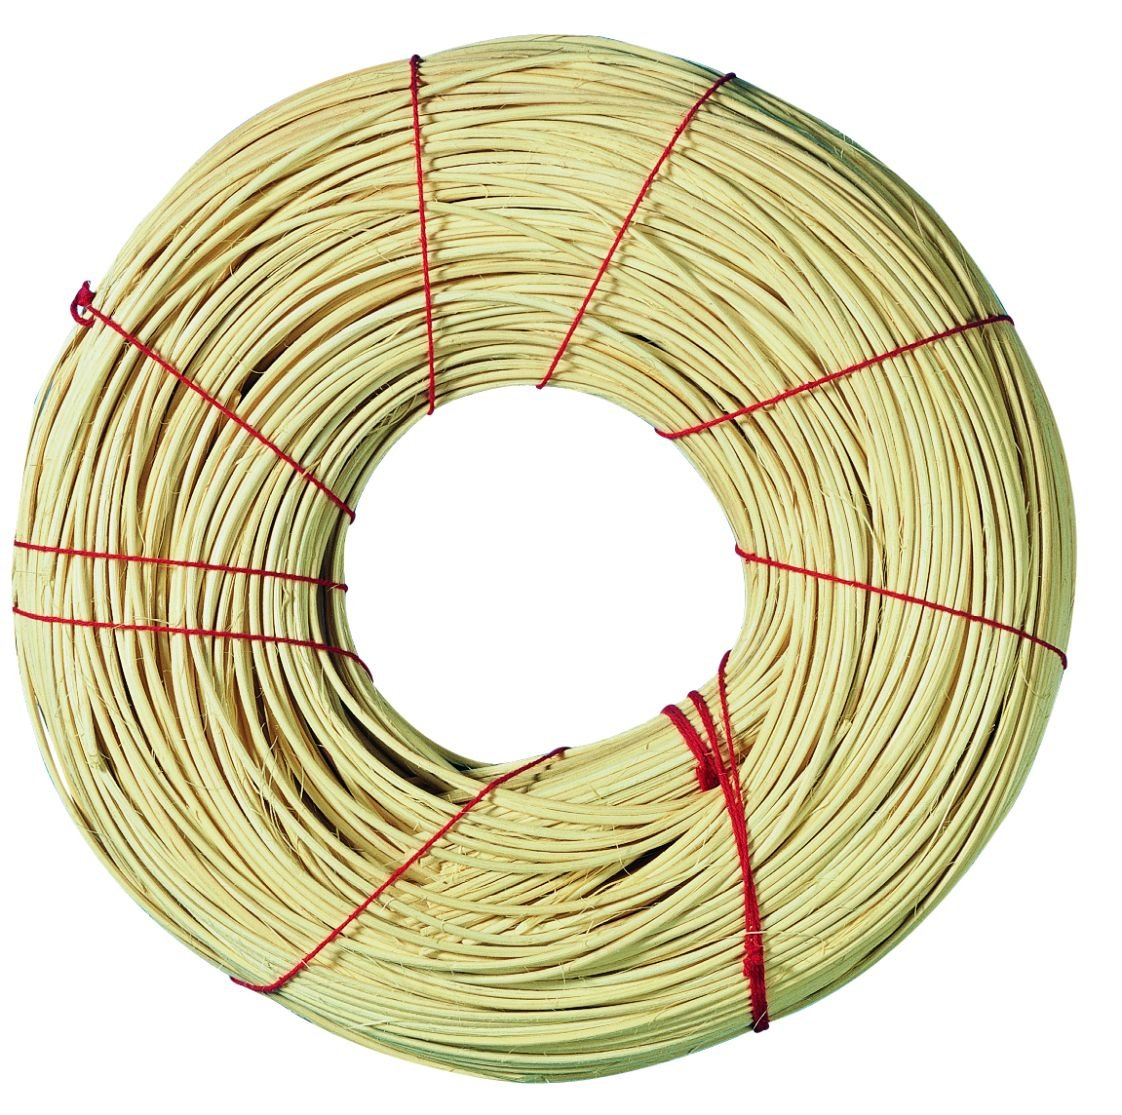 Rayher Red Ribbon Quality Rattan Roll, Natural, 2 mm Diameter, 500 g